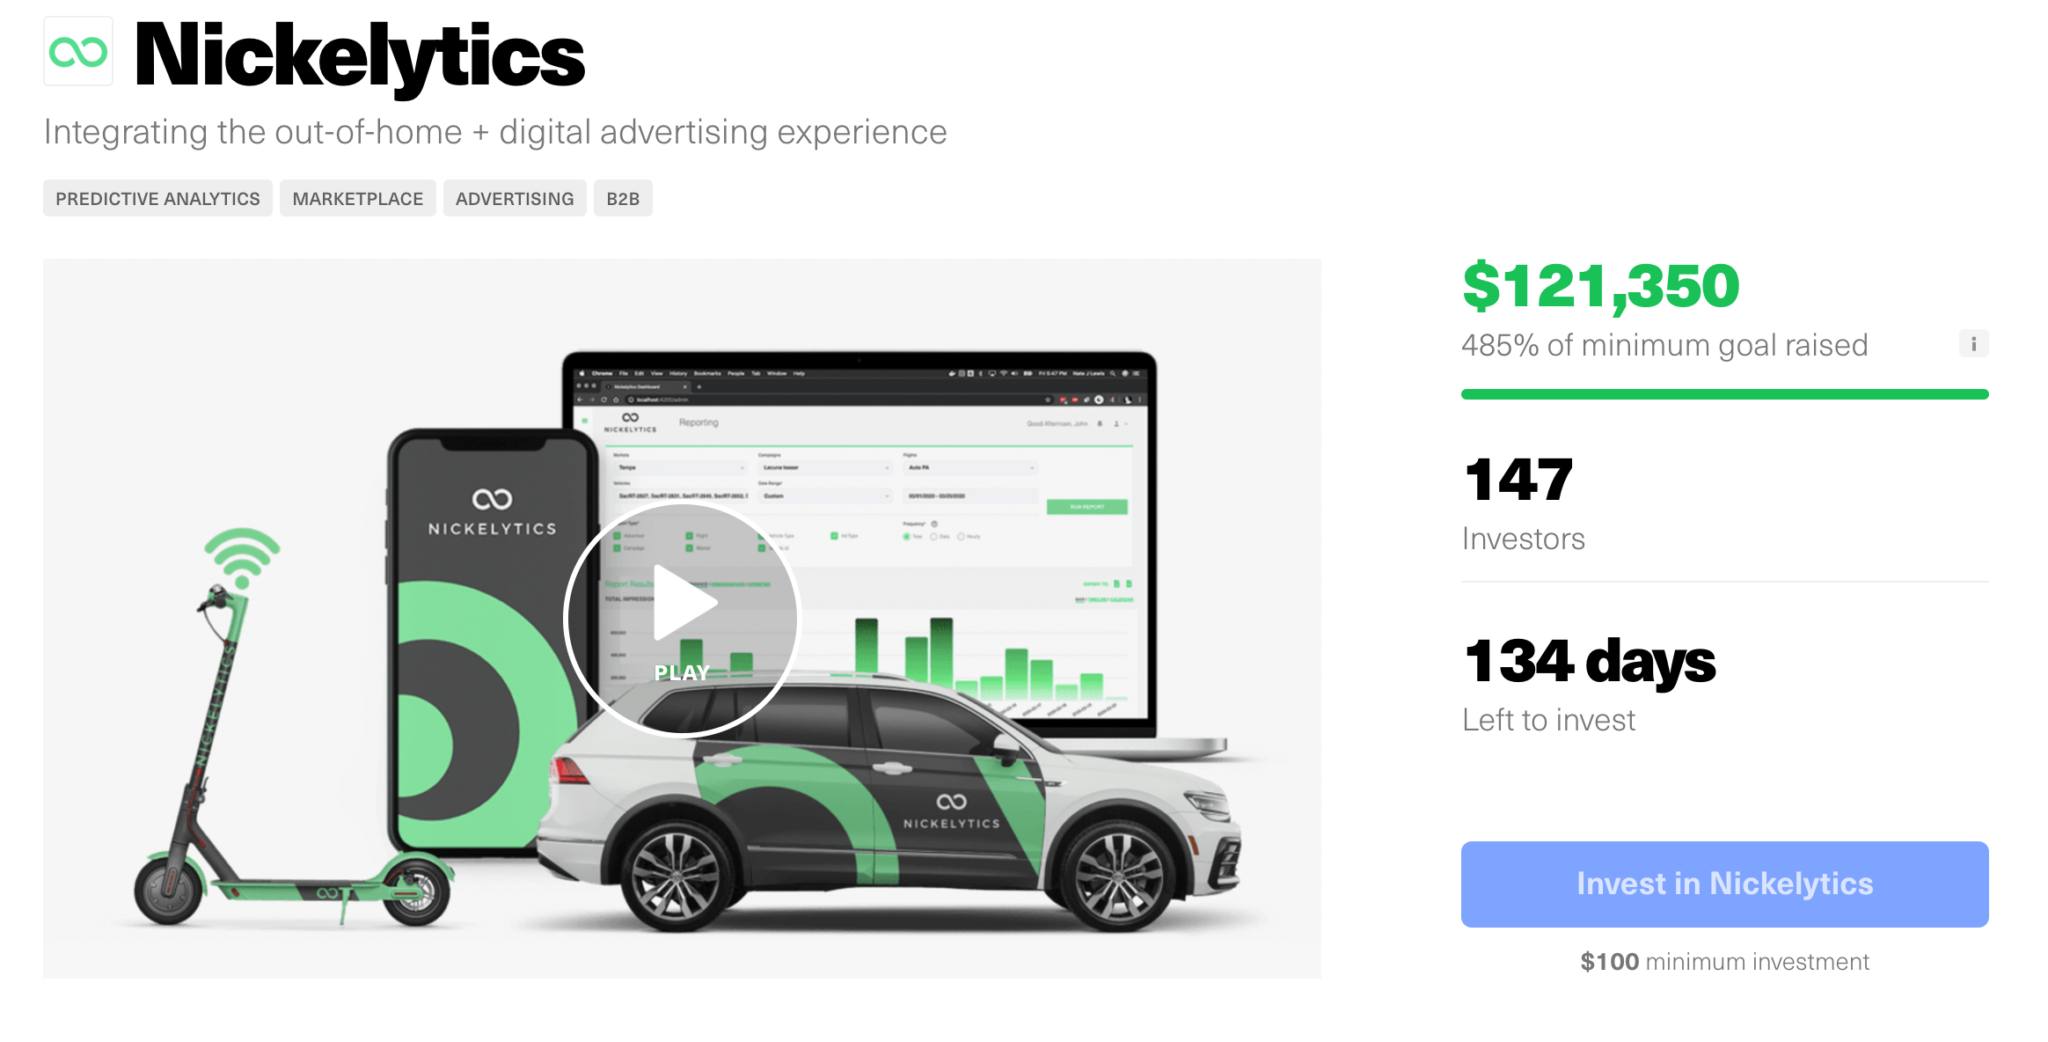 nickelytics-raises-$120,000-in-a week